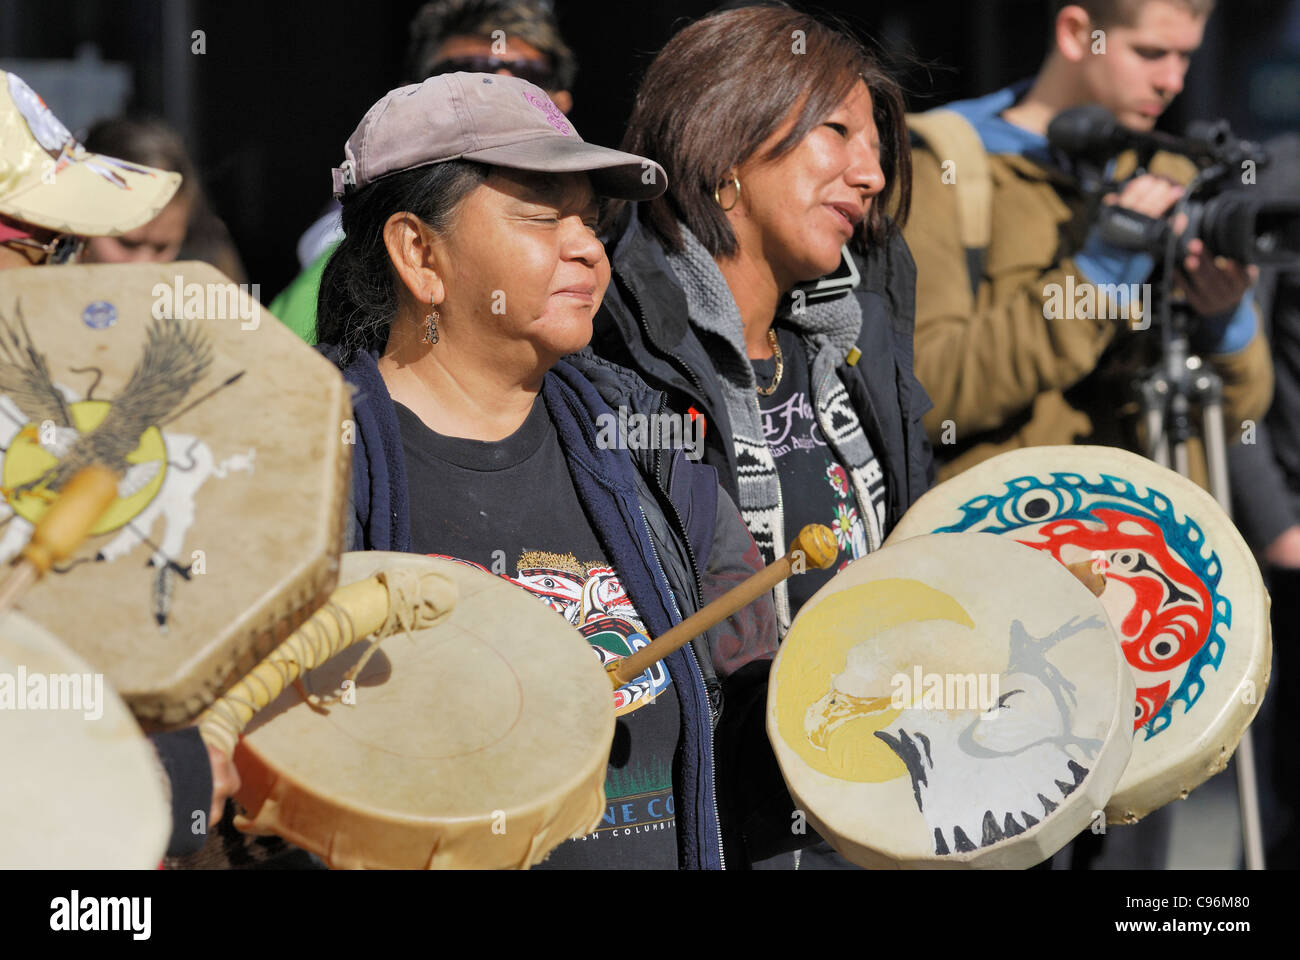 First Nations women banging ceremonial drums. - Stock Image